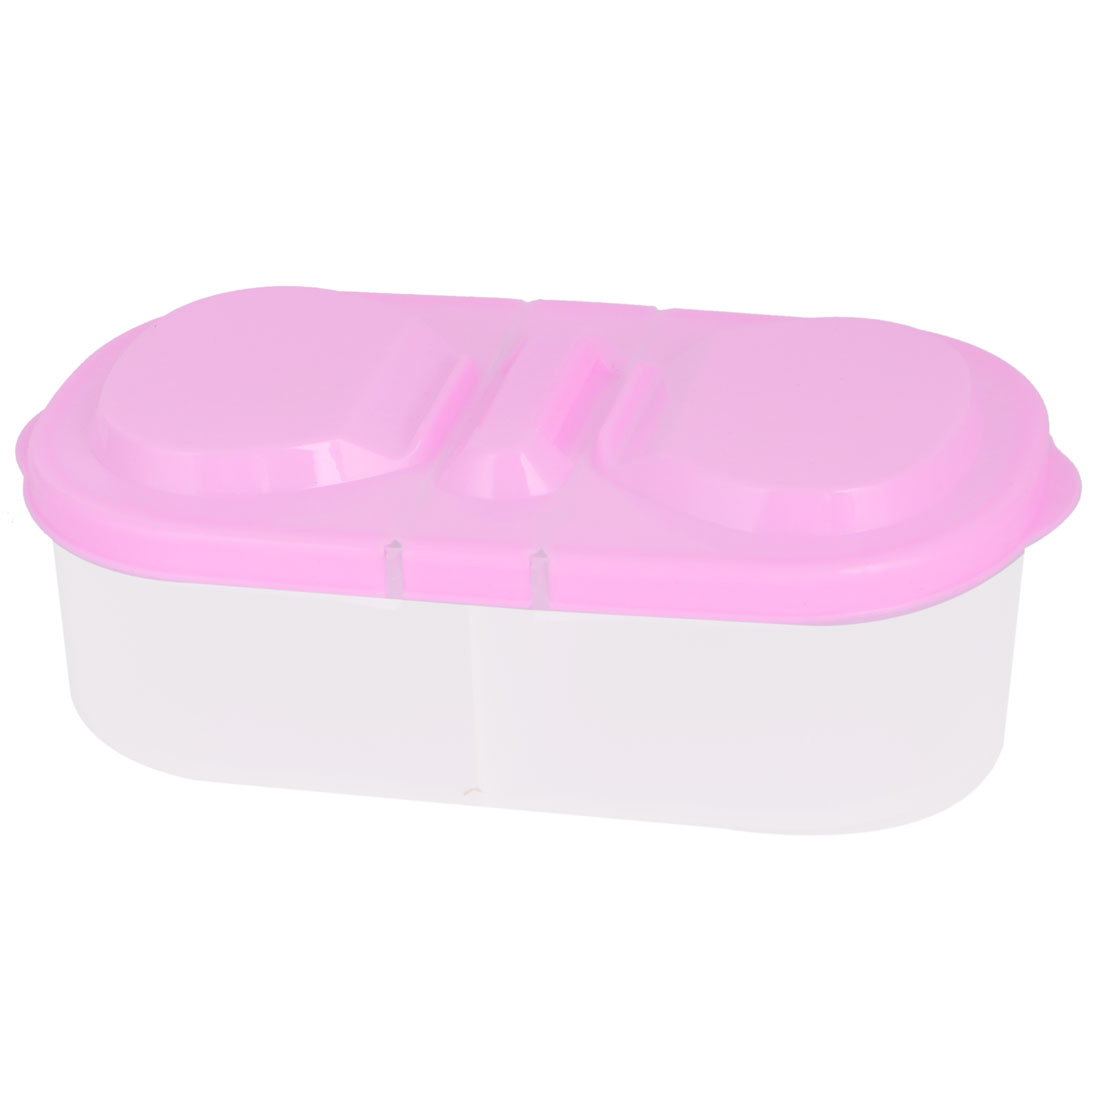 Home Kitchen Plastic 2 Compartments Food Vegetable Fruit Storage Container Box Pink